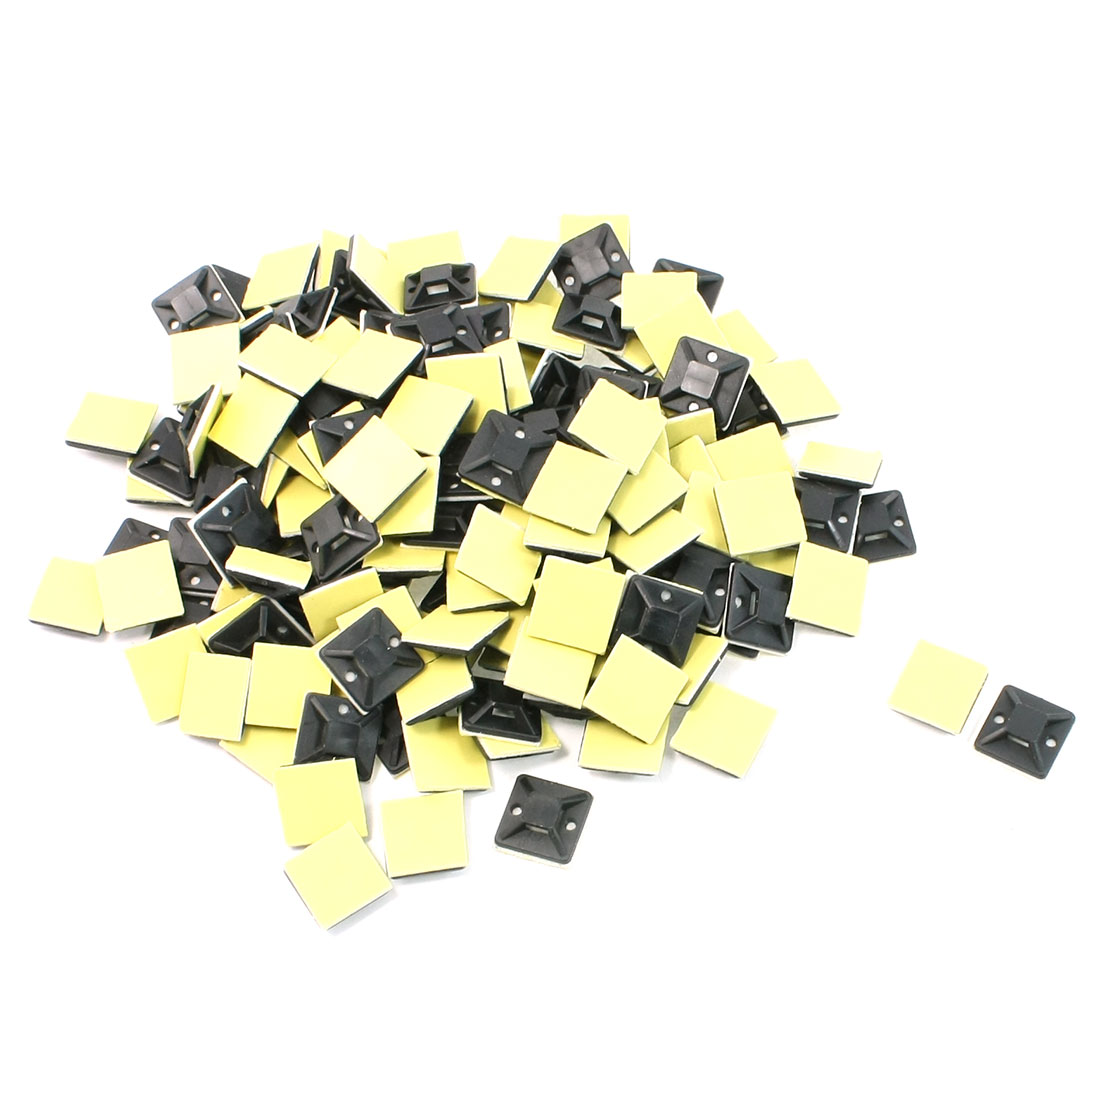 100 Pcs Black Self Adhesive Cable Tie Mount Base Holder 2 x 2 x 0.6cm